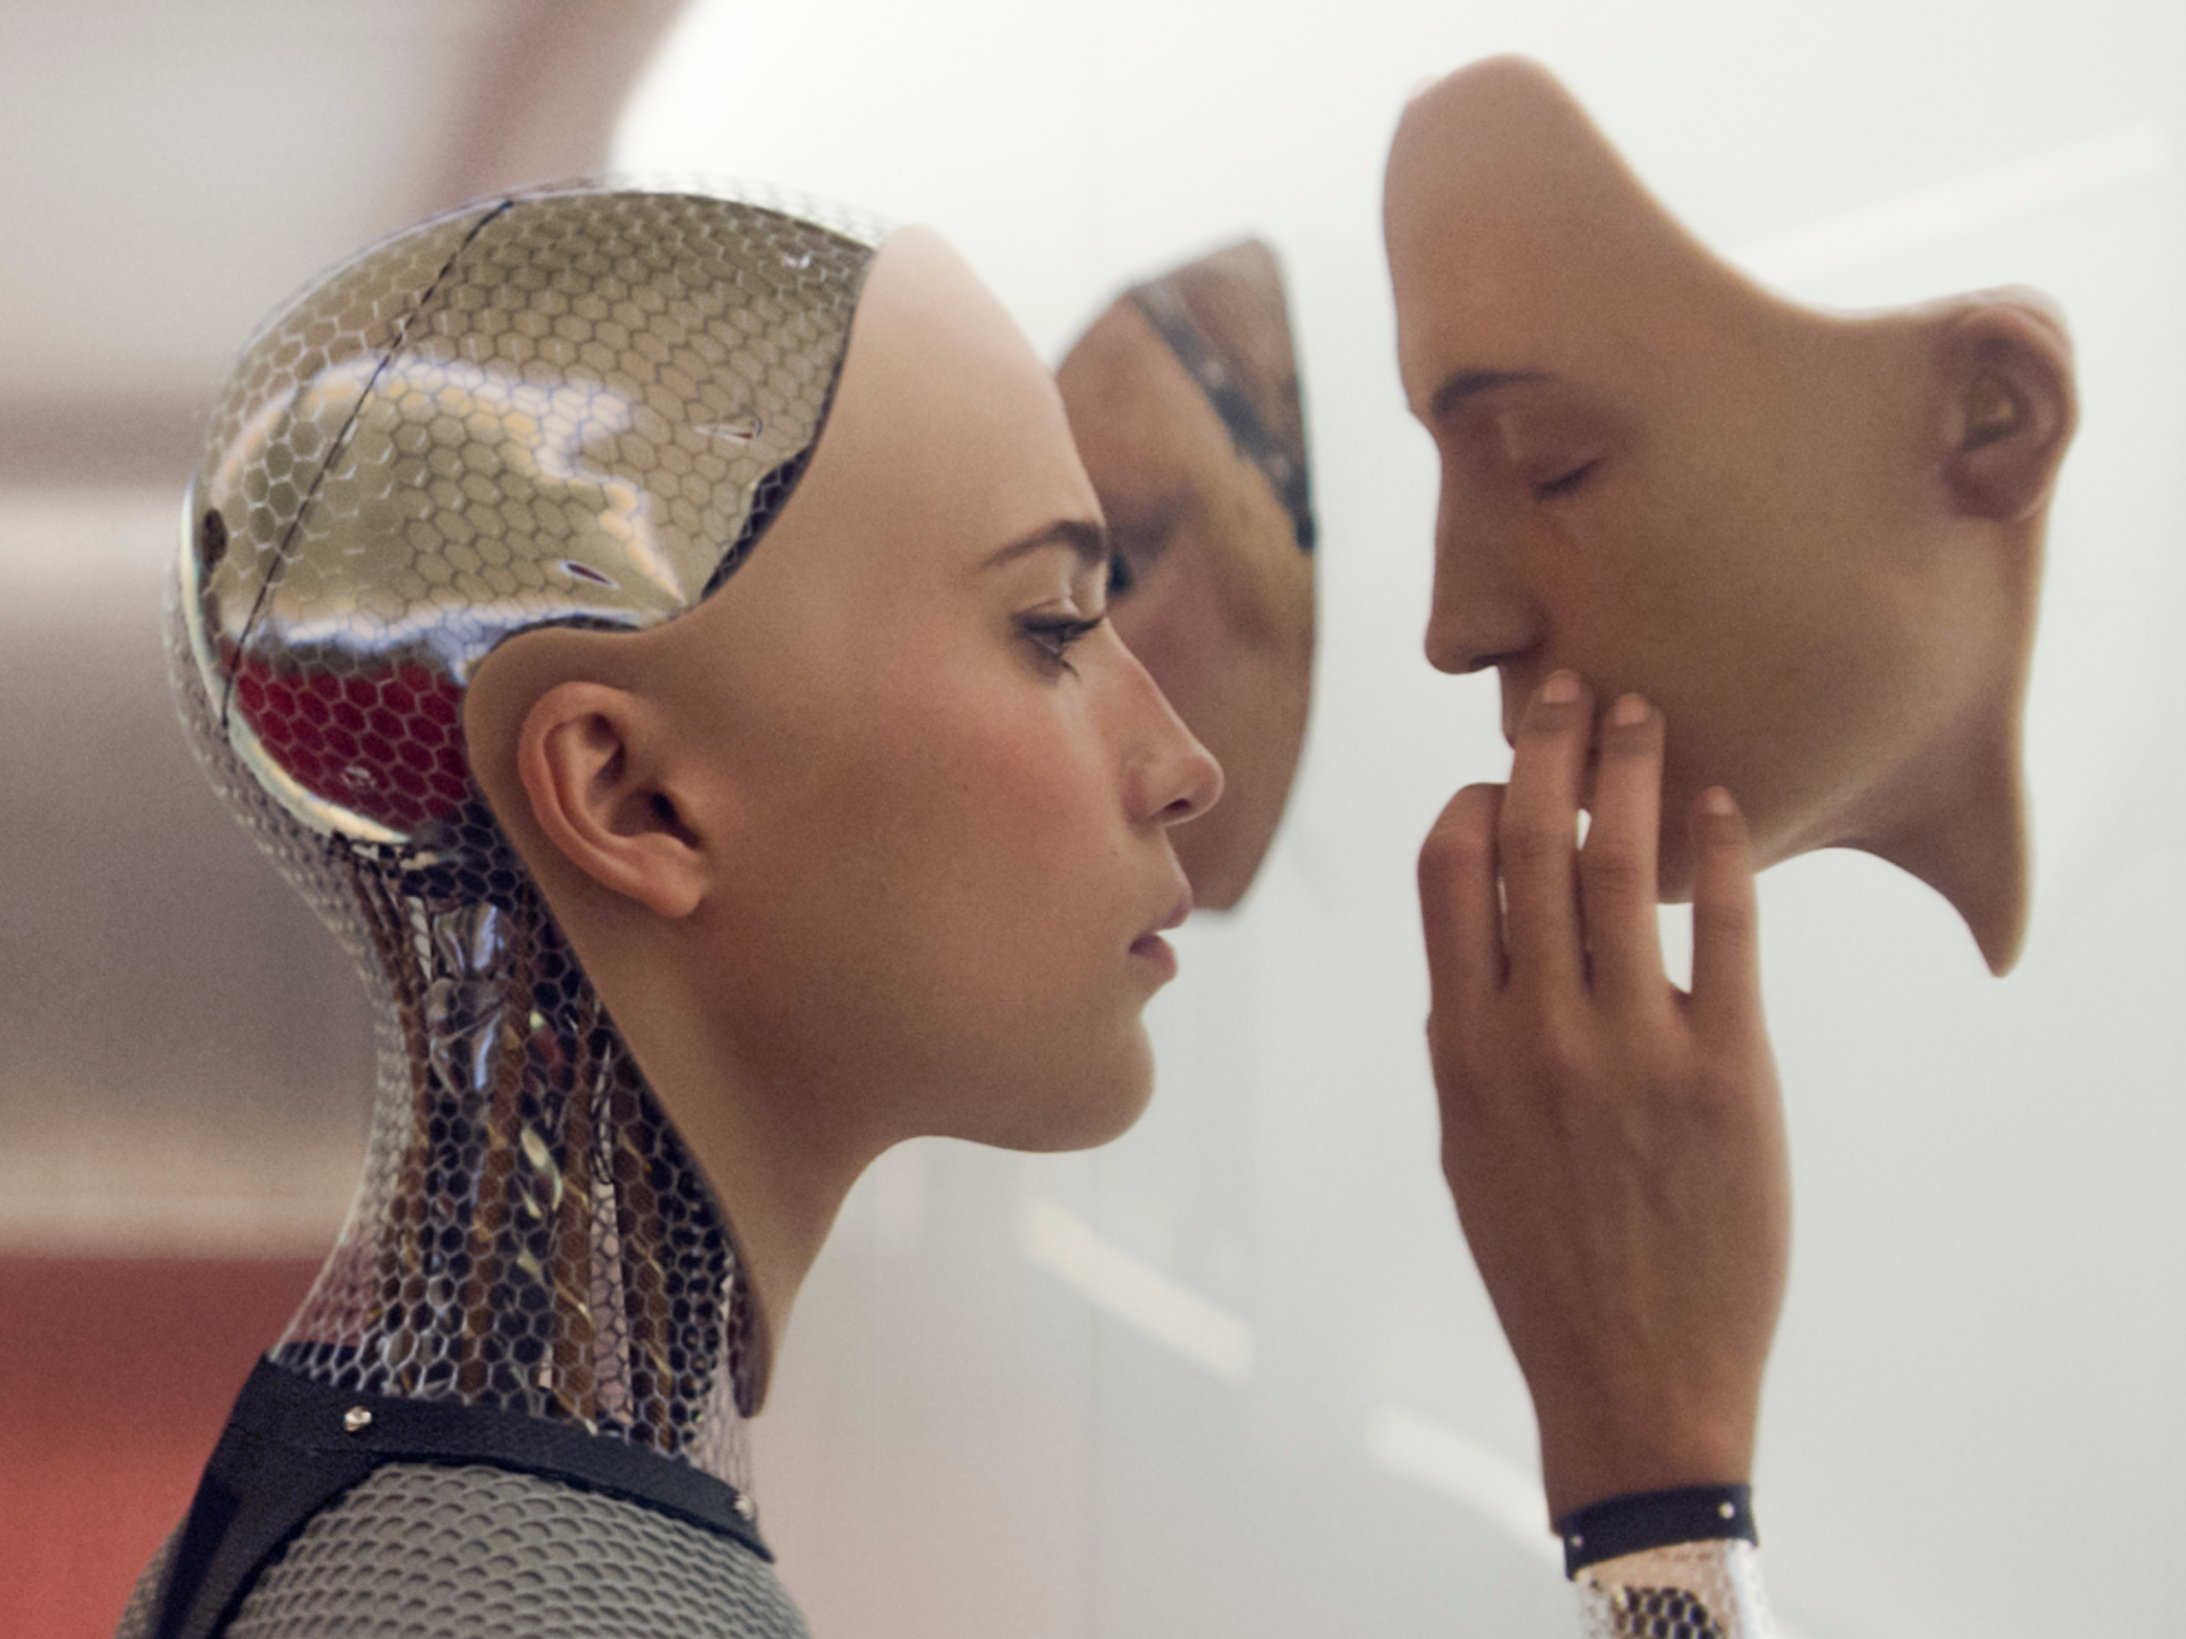 http://www.businessinsider.com/predictions-about-artificial-intelligence-from-former-google-vp-andrew-moore-2015-12